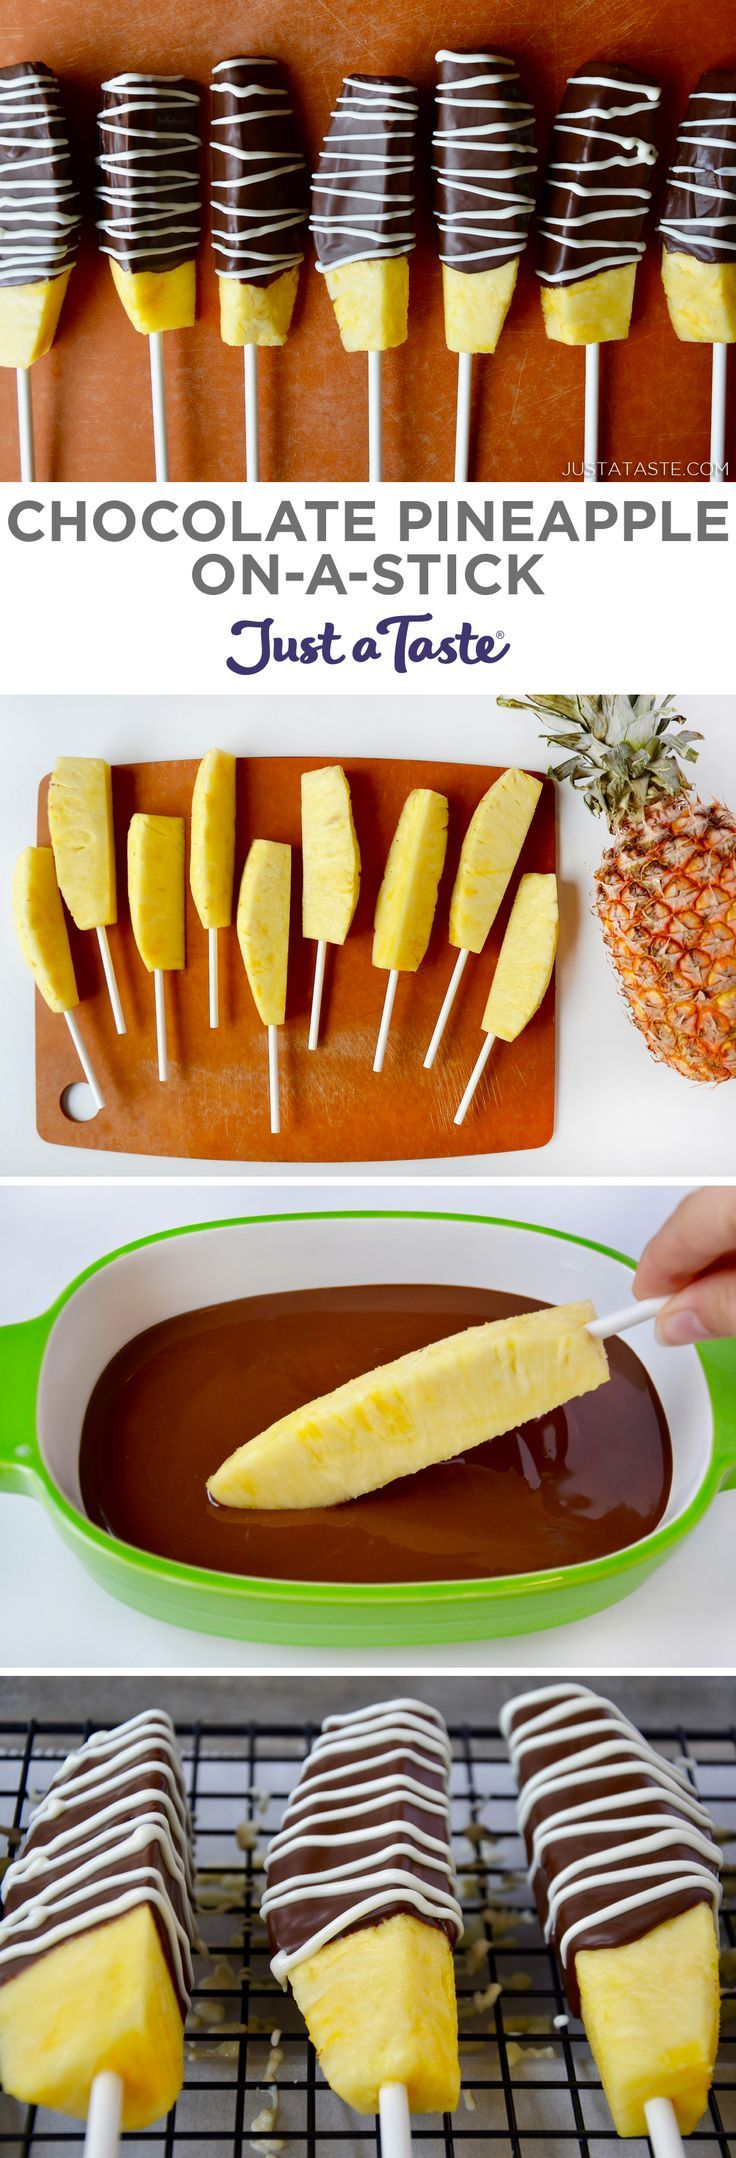 Chocolate Pineapple On-a-Stick recipe from justataste.com #recipe #summer #fruit